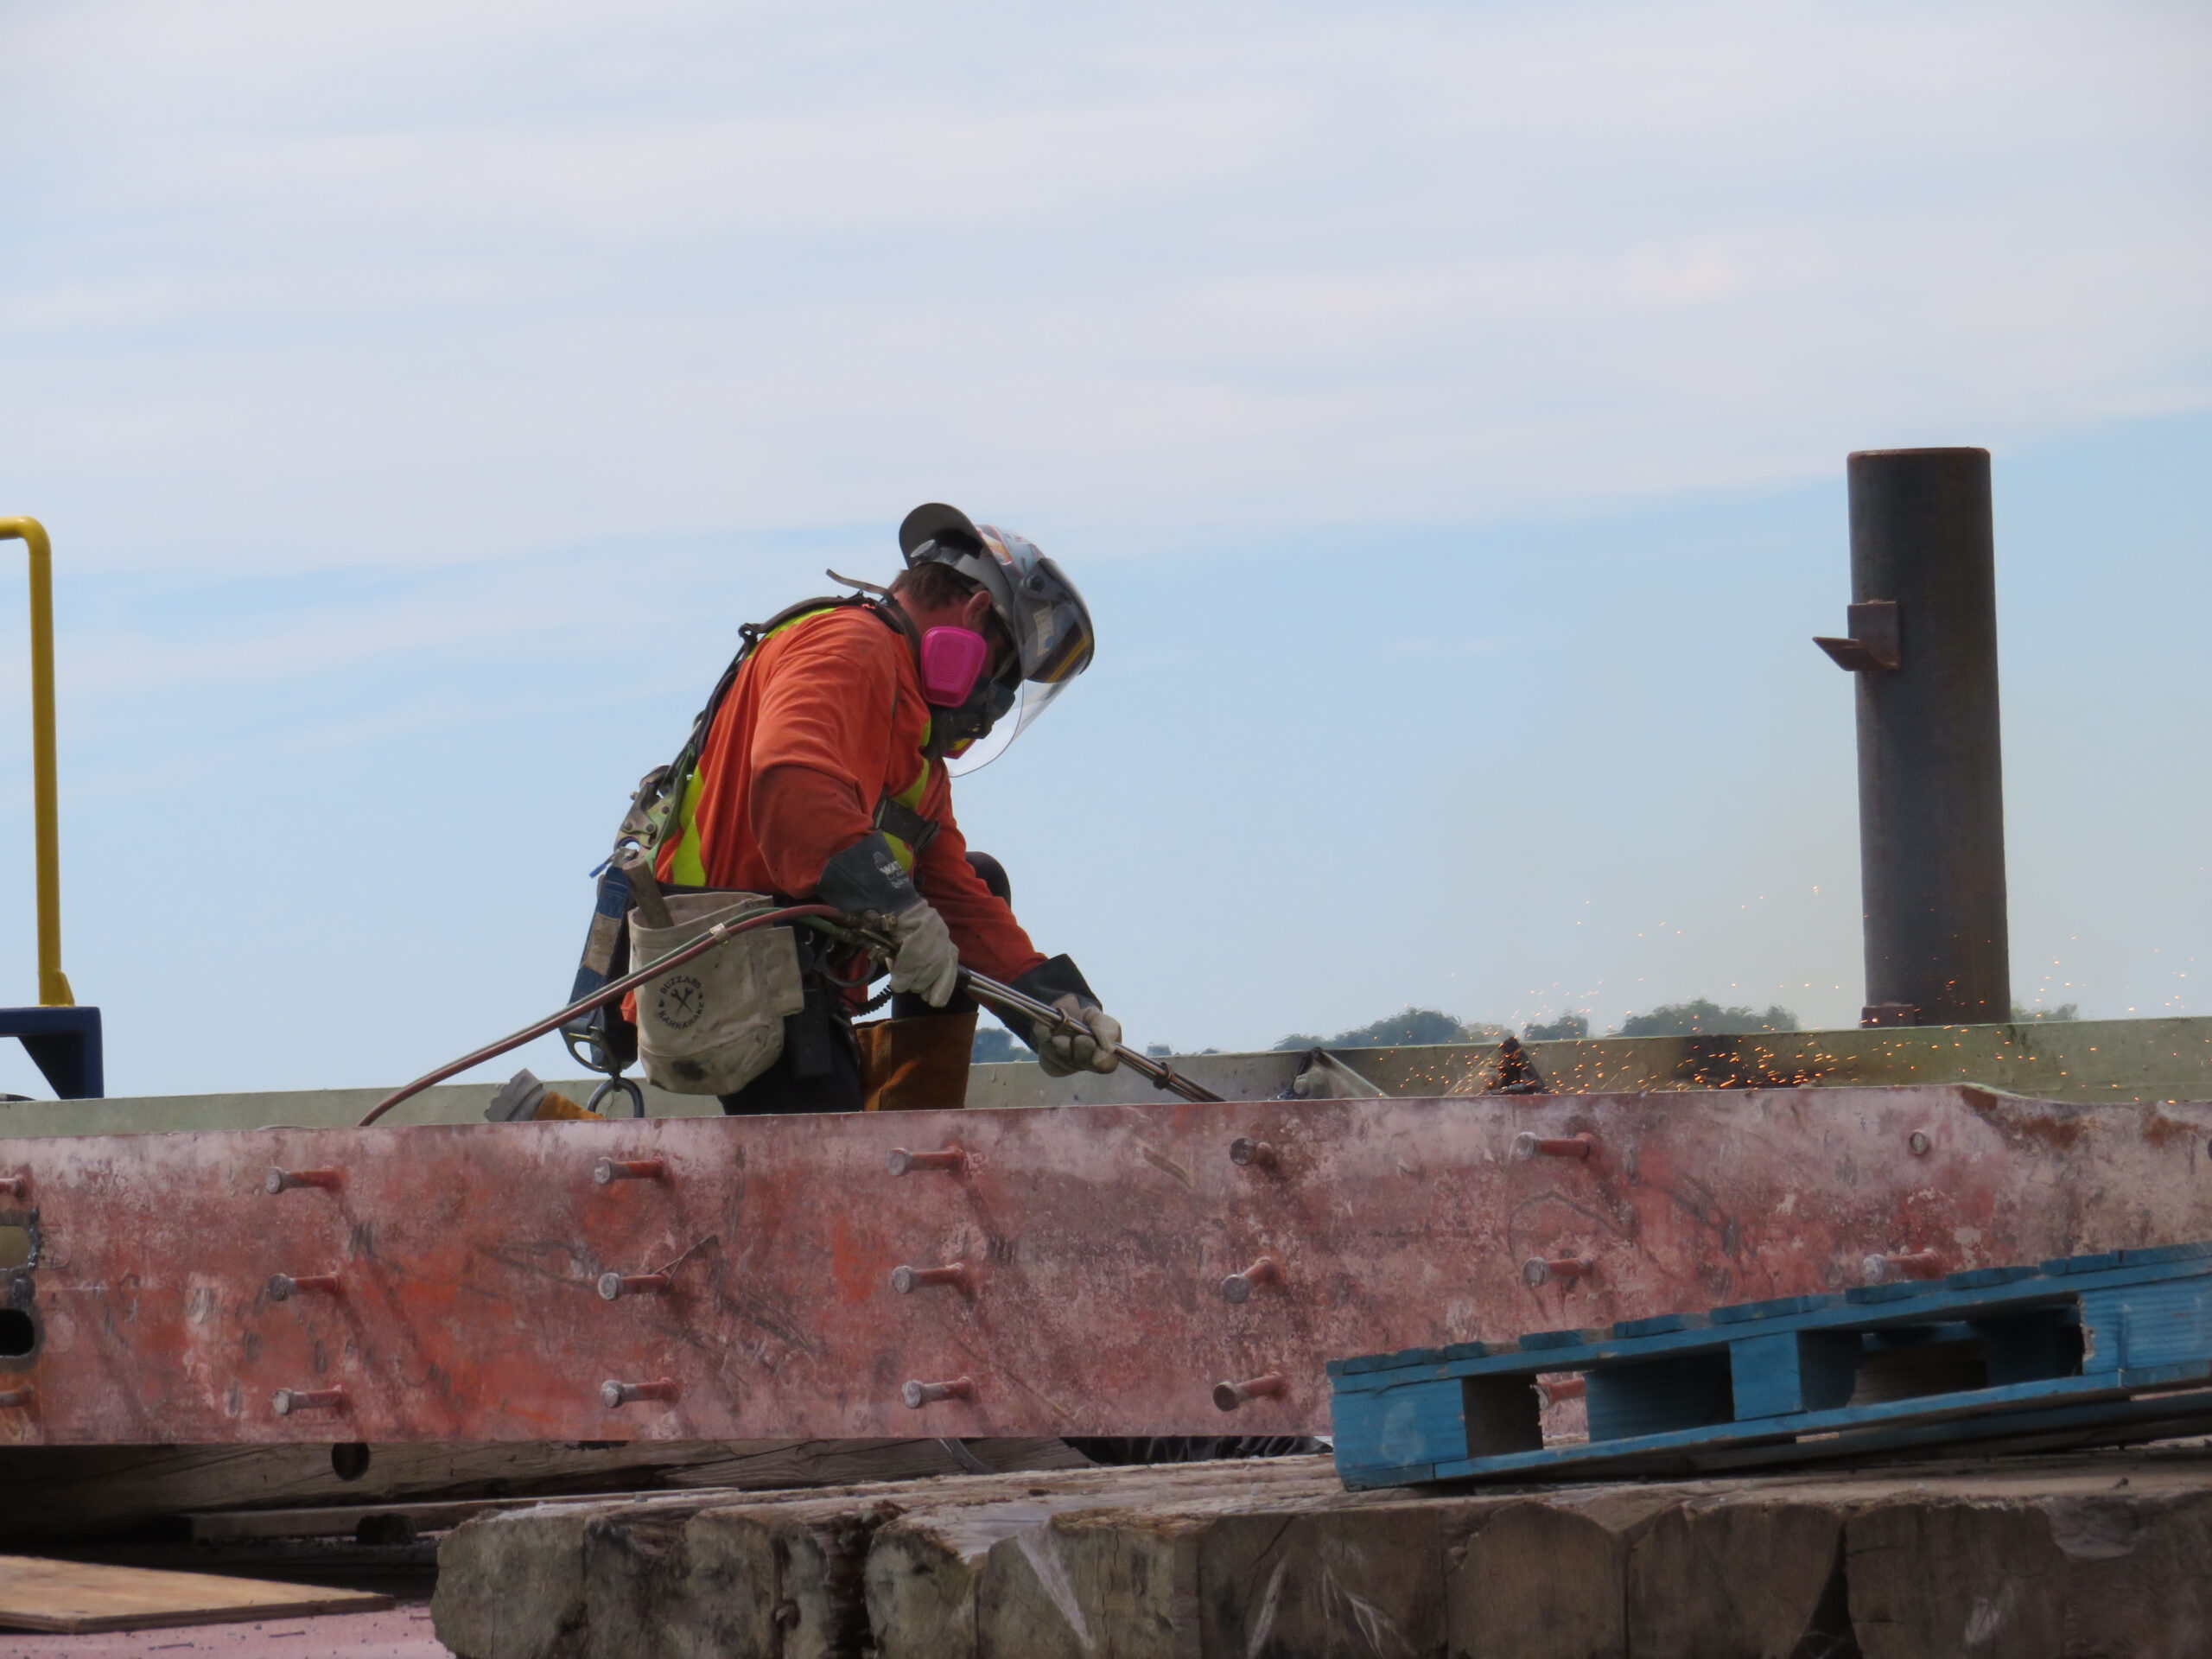 Torch cutting the removed girder